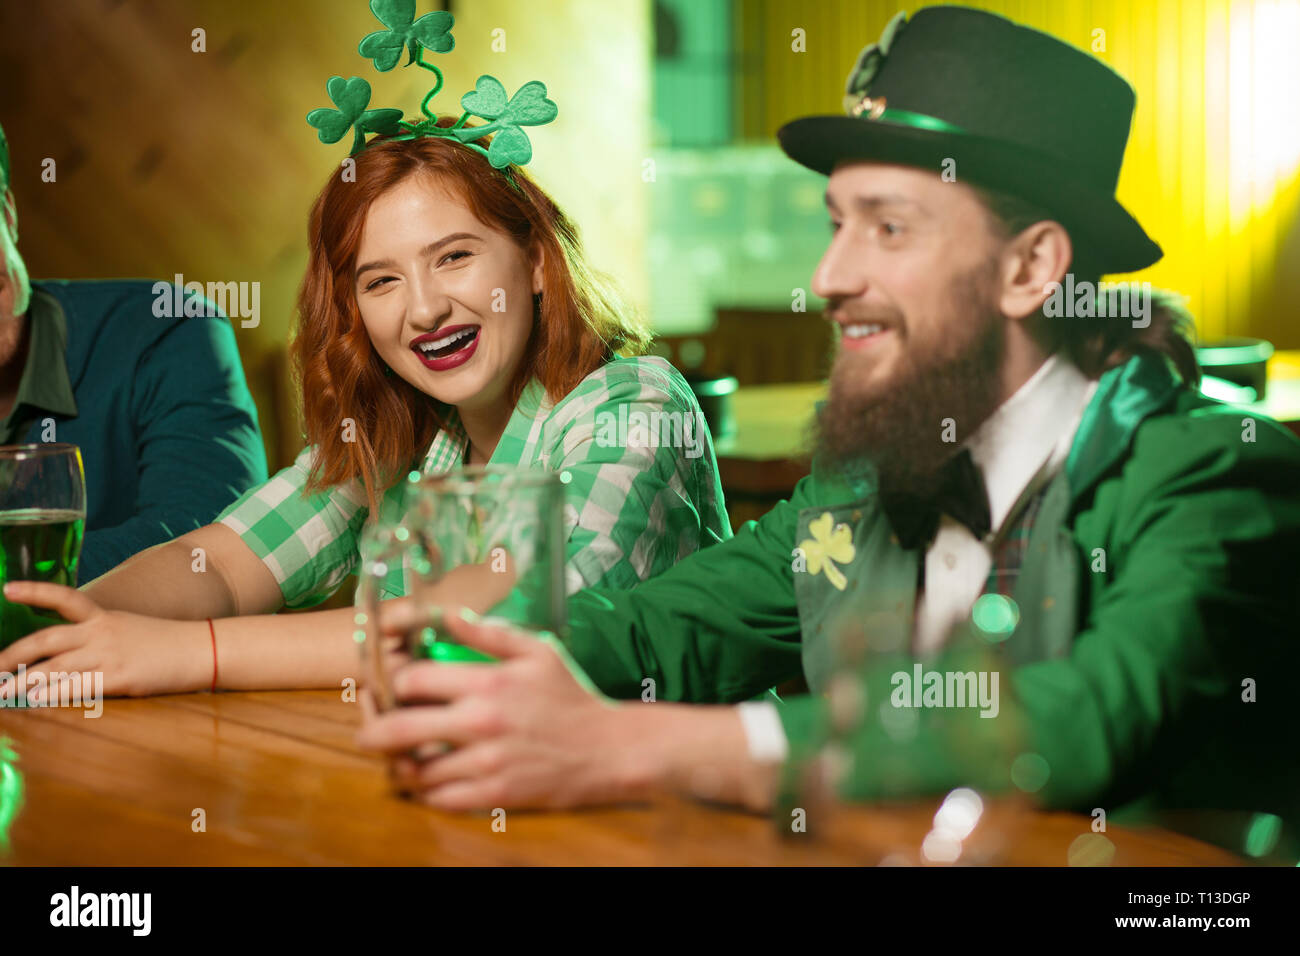 Red-haired pretty girl with shamrock headwear laughing loudly - Stock Image